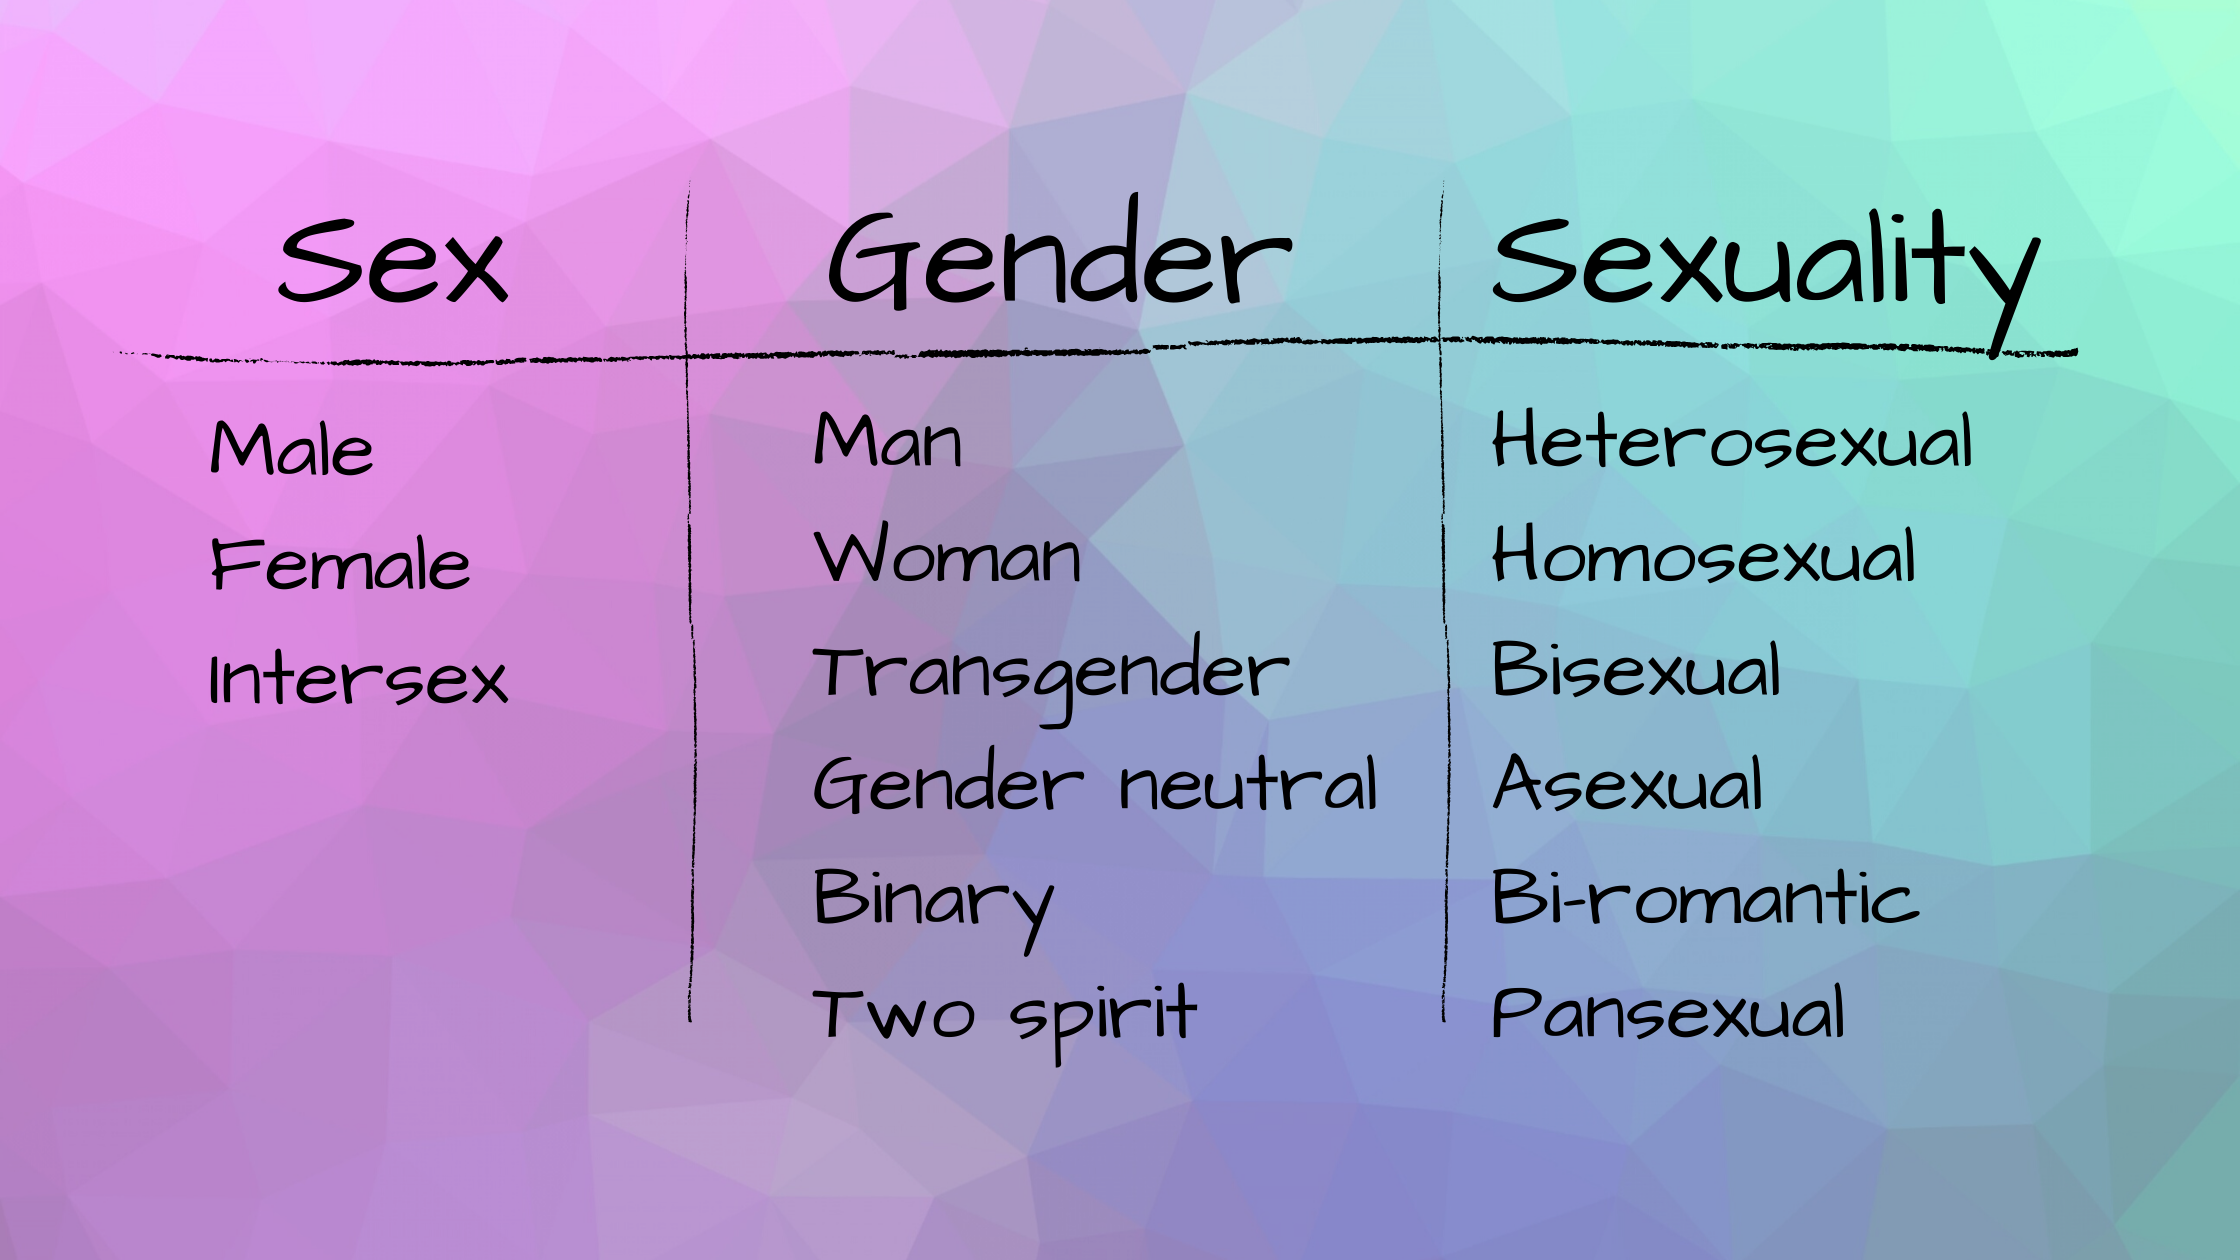 Table showing components of sex, gender, and sexuality to indicate how they are distinct from one another and not related